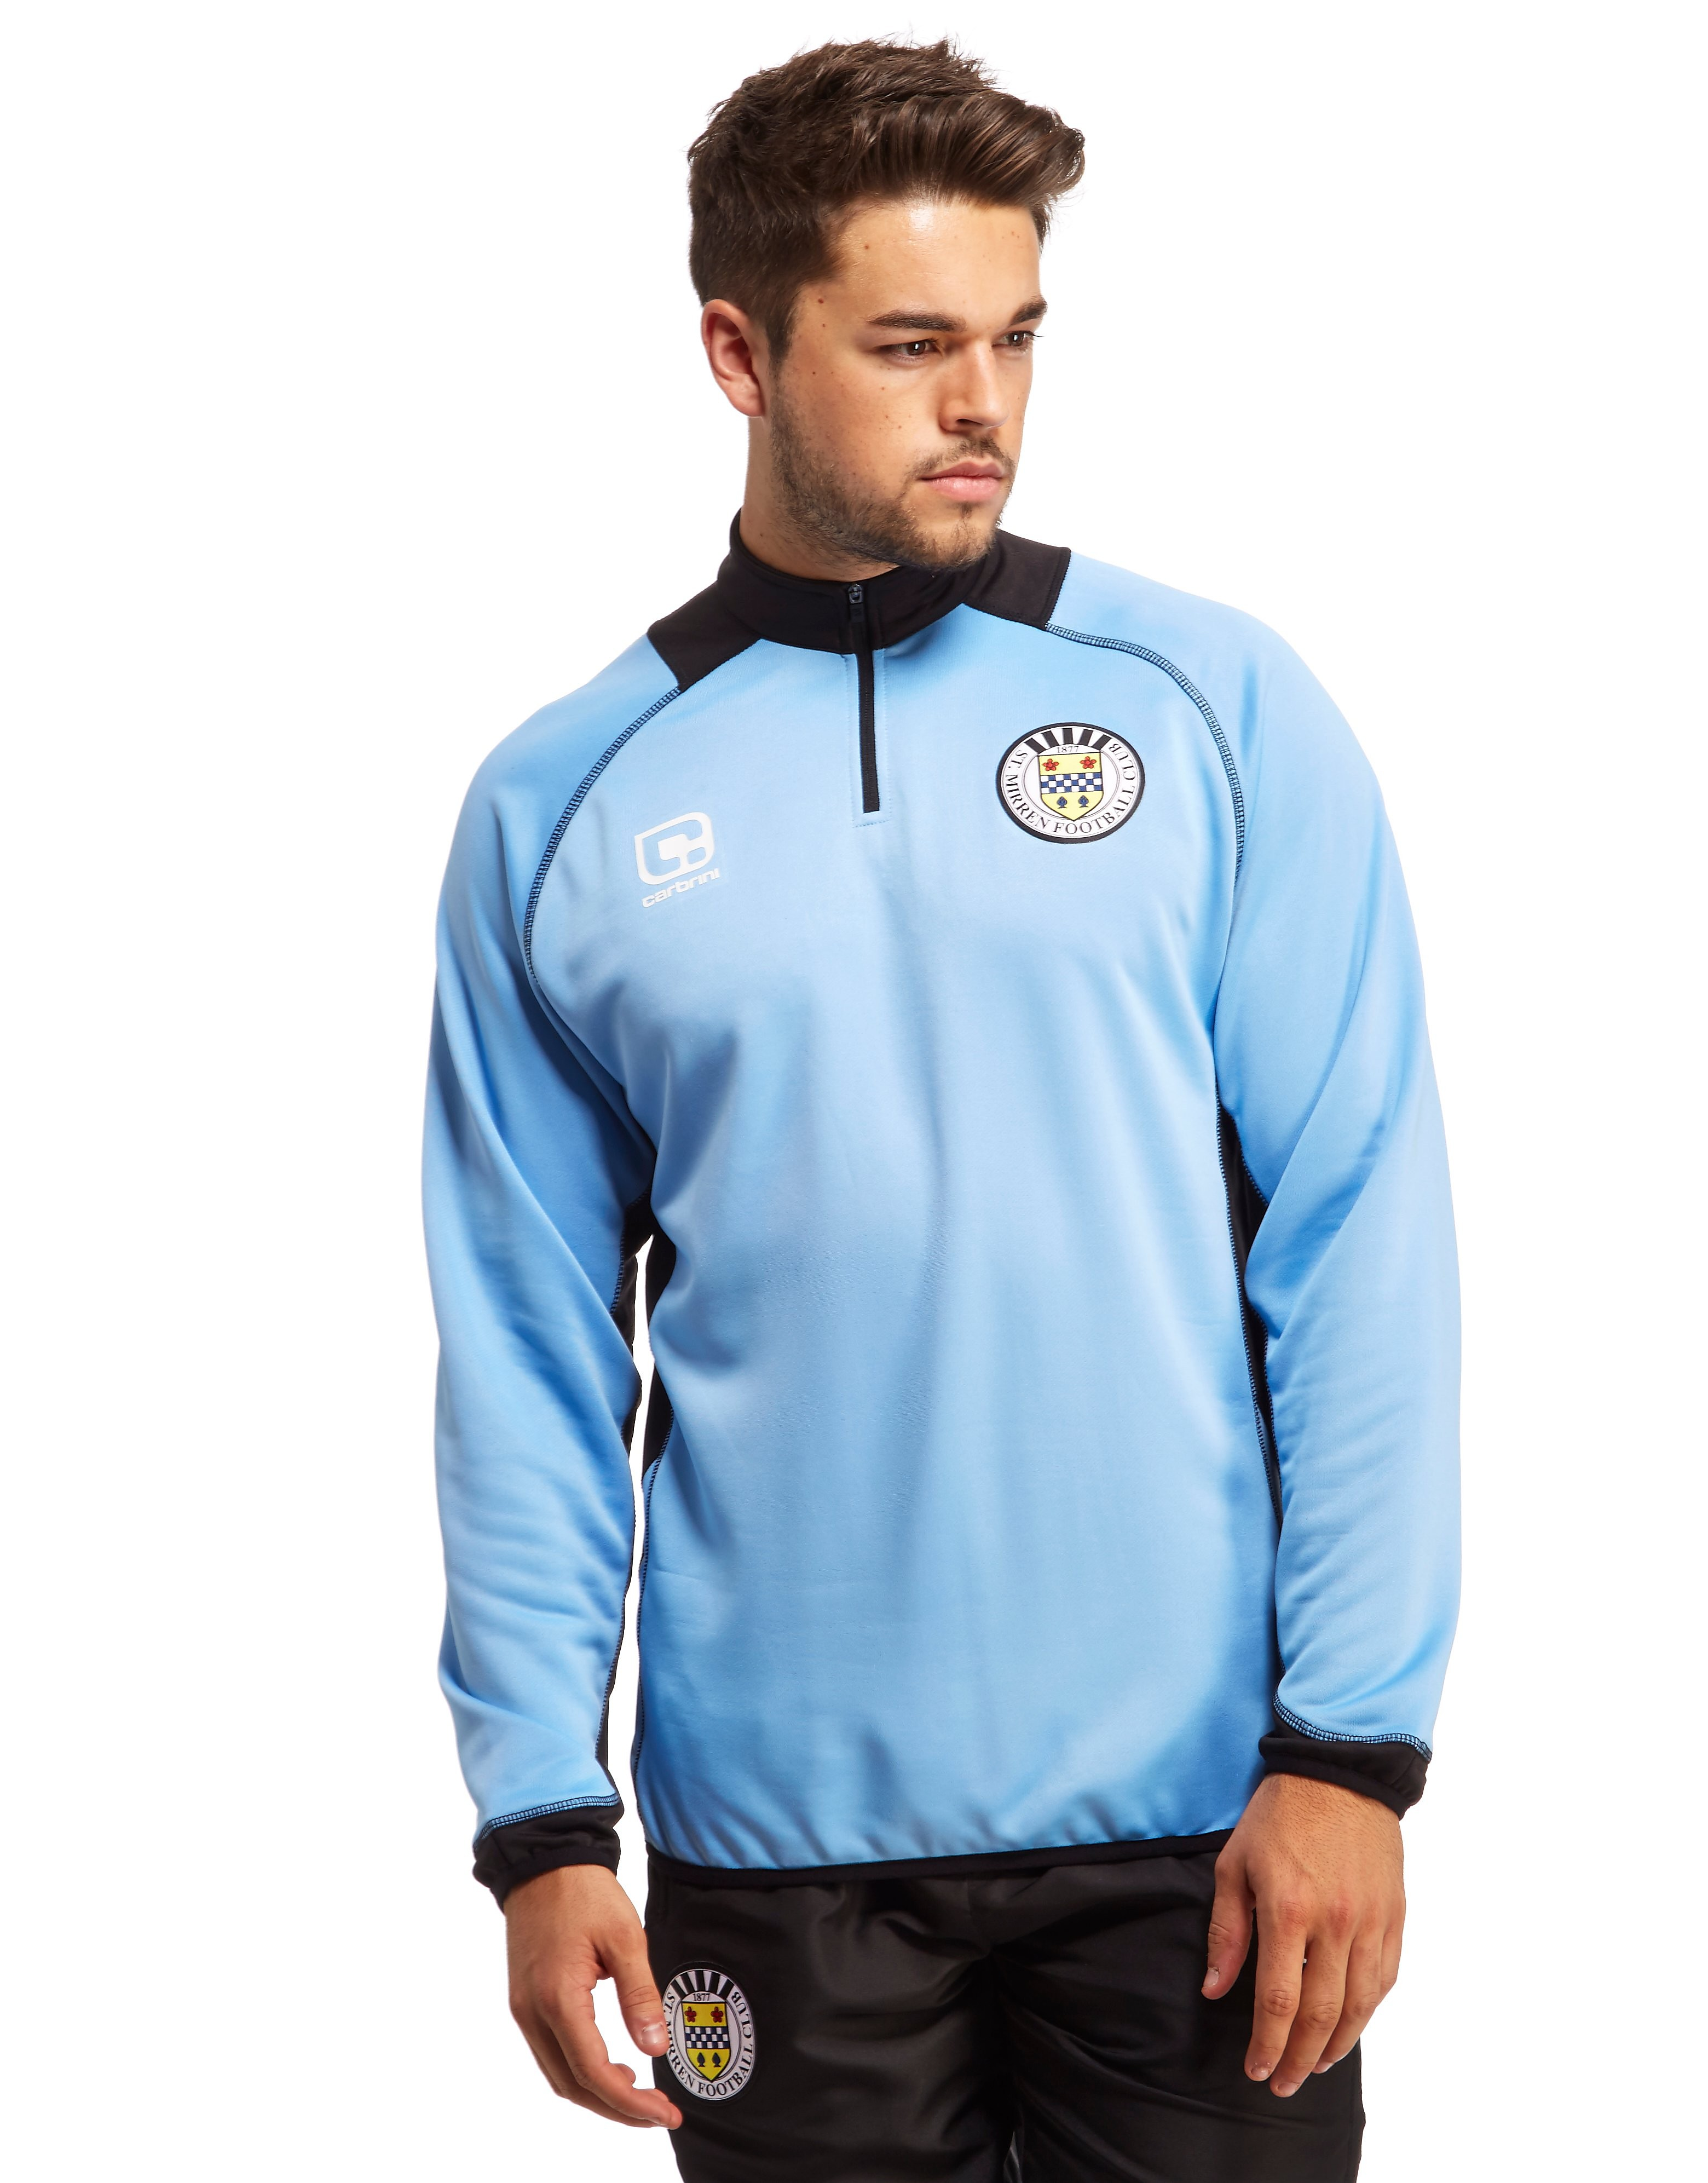 Carbrini St Mirren FC 2016/17 Sweat Top